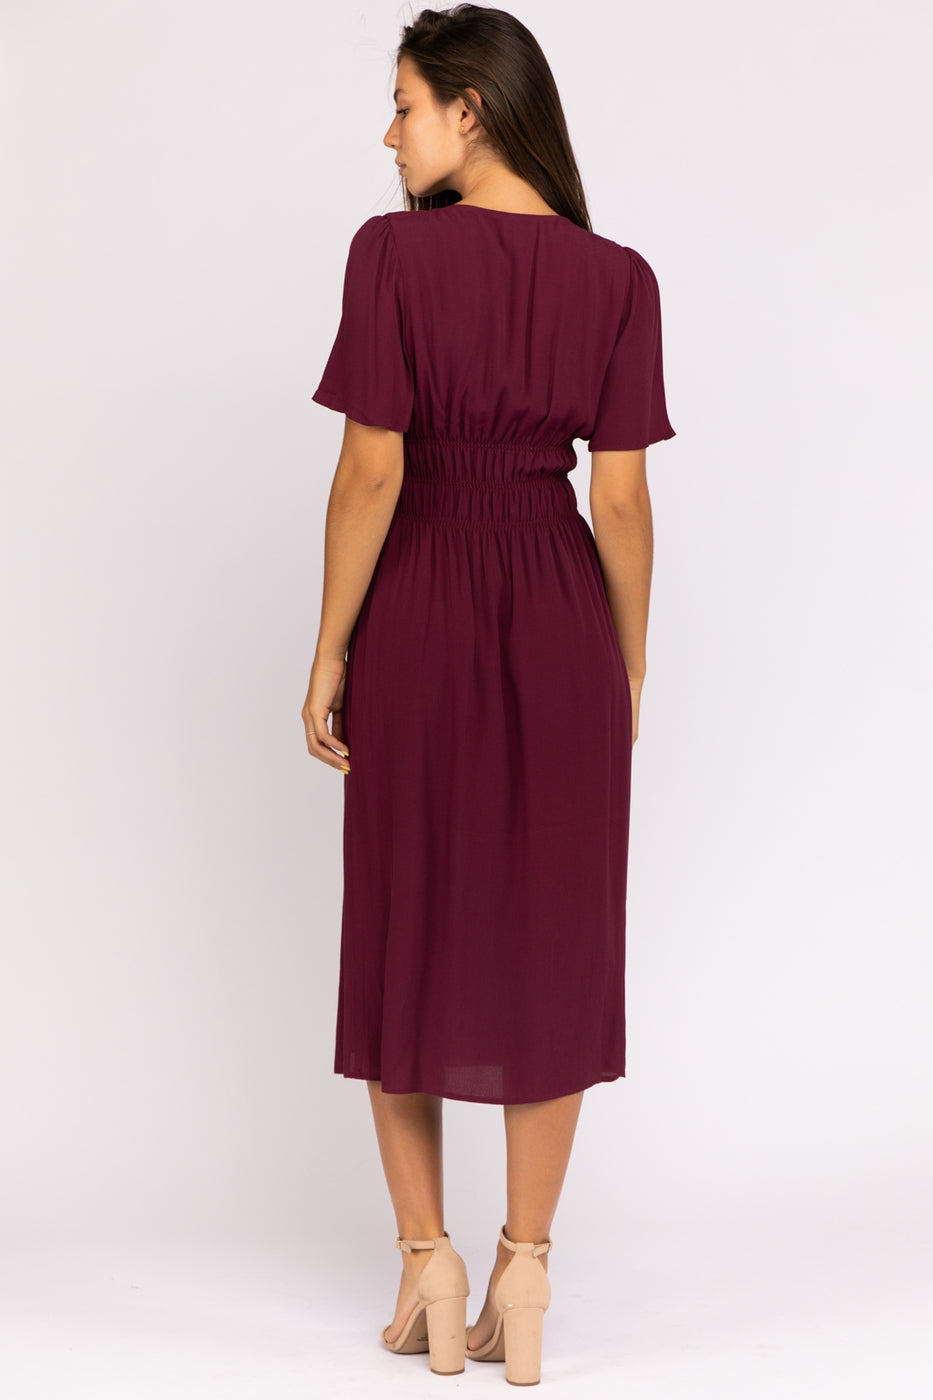 Button Down V Neck Midi Dress With Cinched Waist In Plum Siin Bees